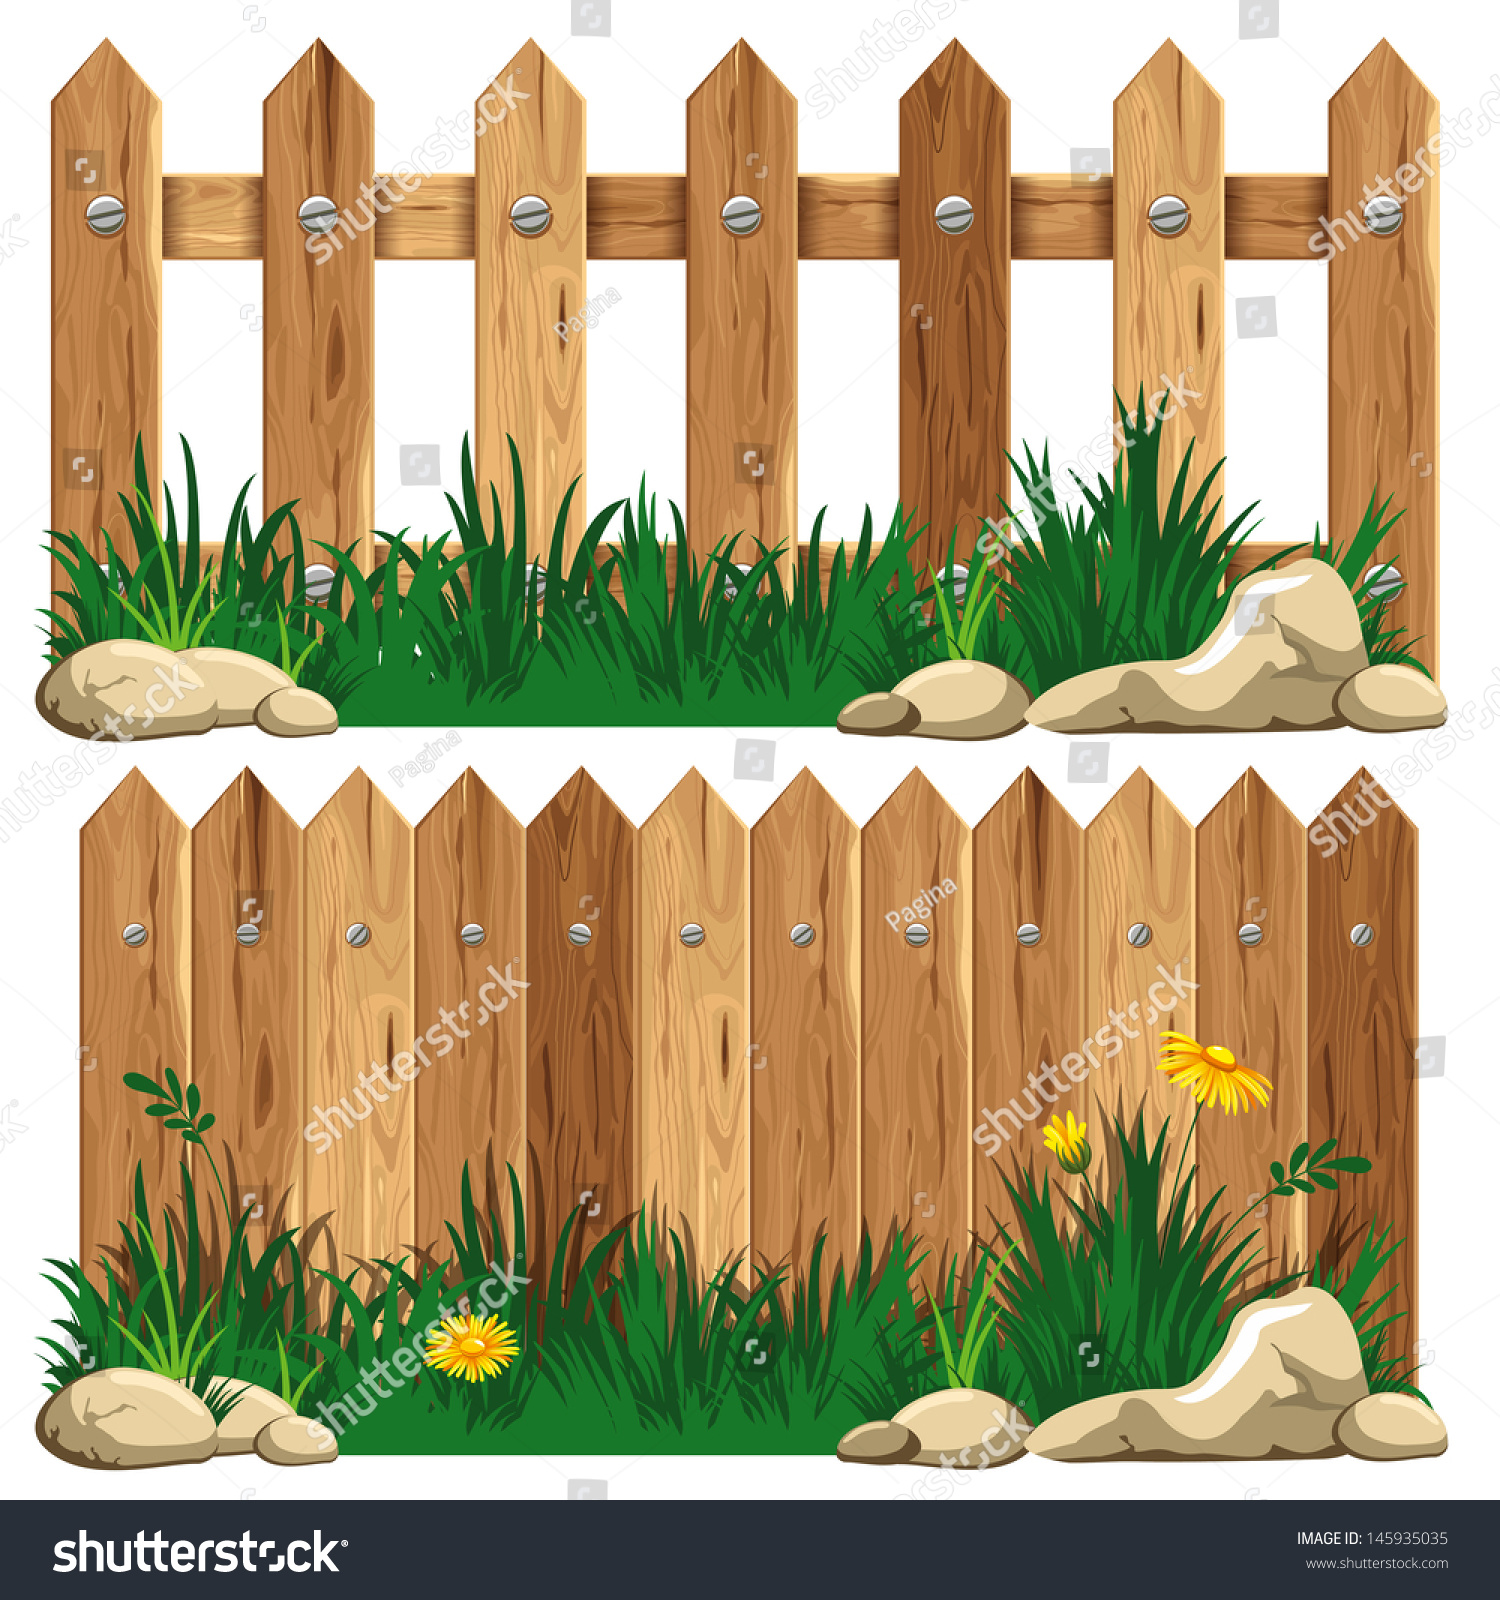 Wooden fence grass vector illustration stock